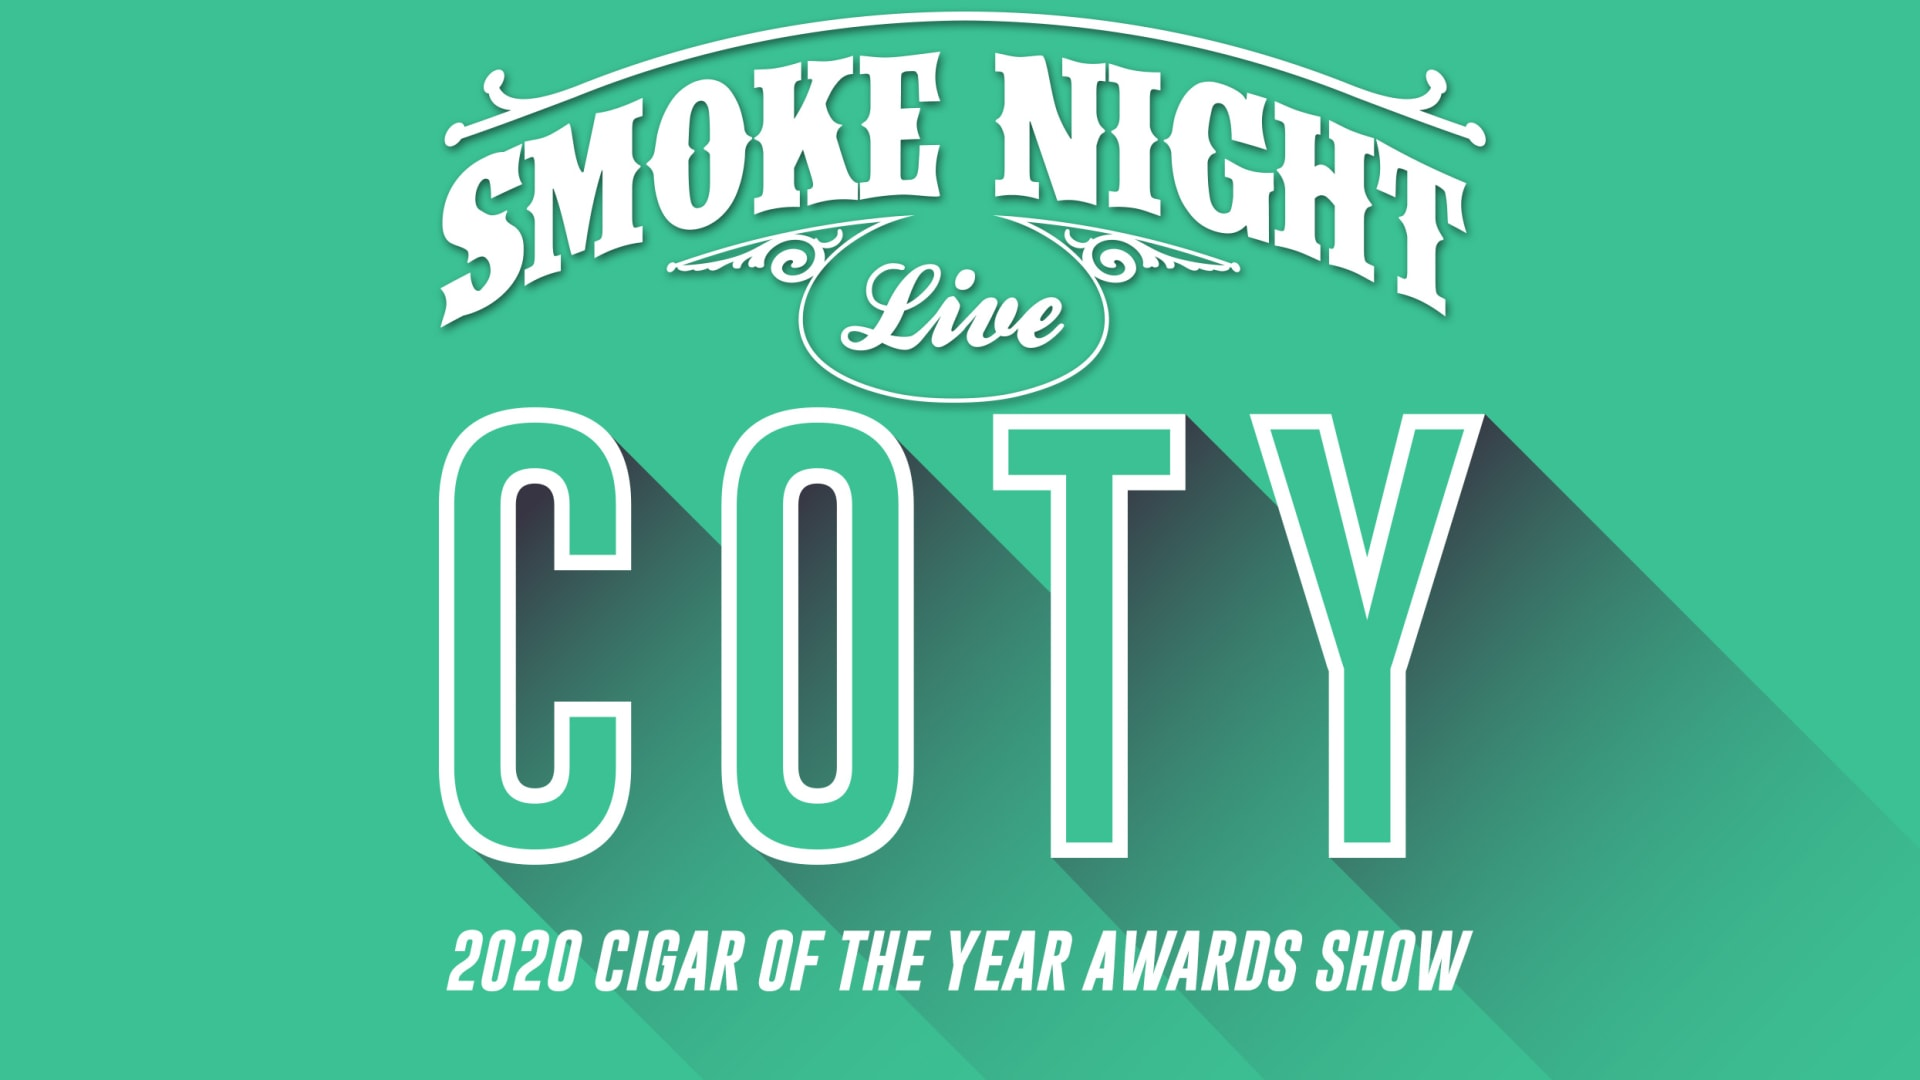 Smoke Night LIVE – 2020 Cigar of the Year Awards Show Featured Image